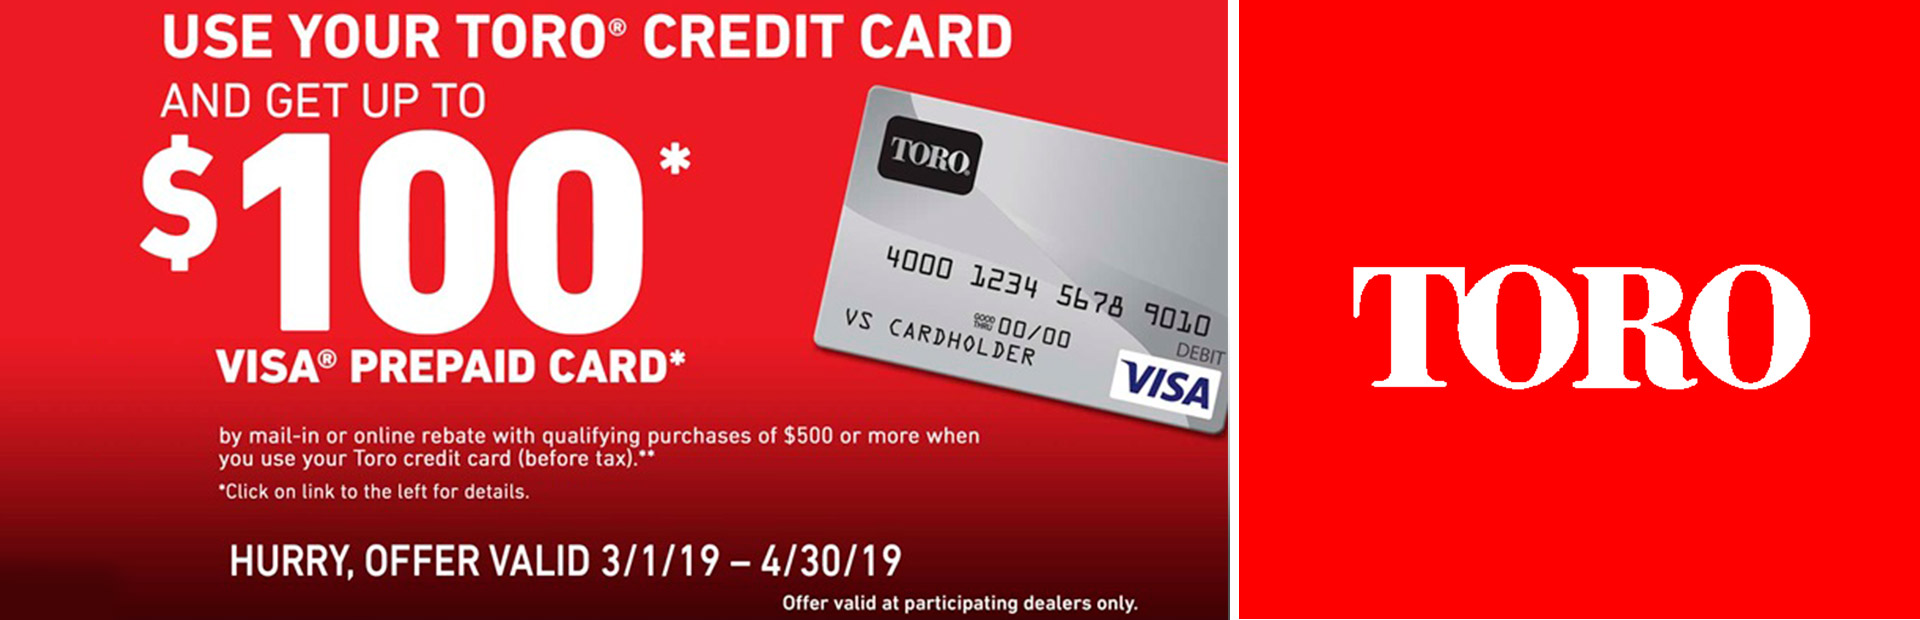 Toro: Toro Visa Prepaid Card Offer